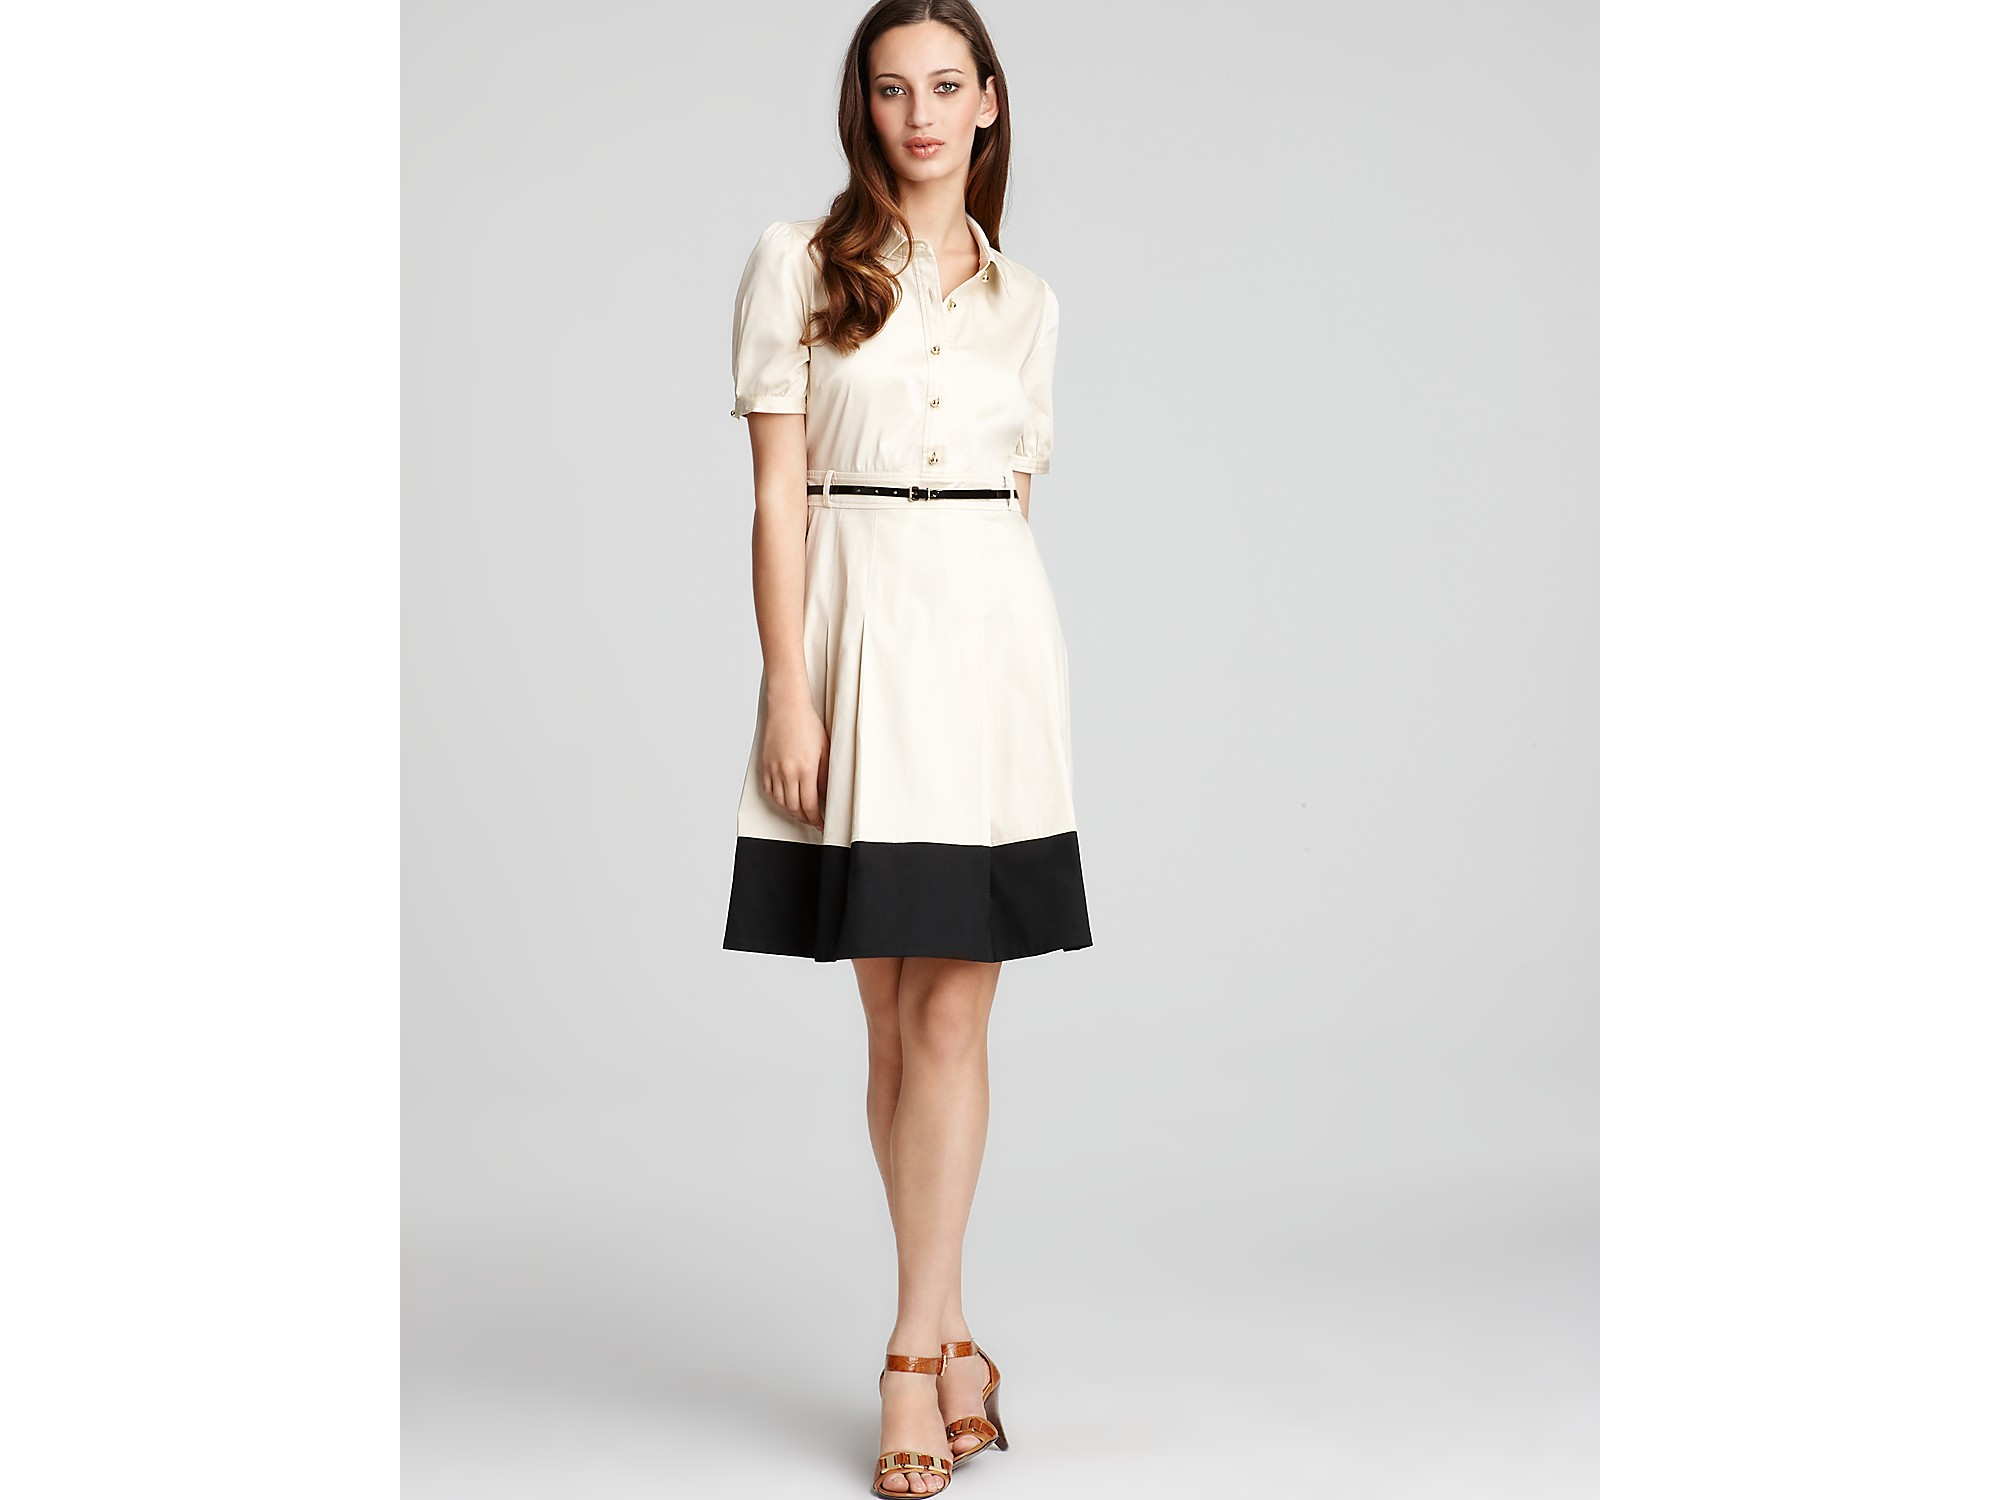 580afcd635b Kate Spade Jeanette Belted Shirt Dress in Natural - Lyst